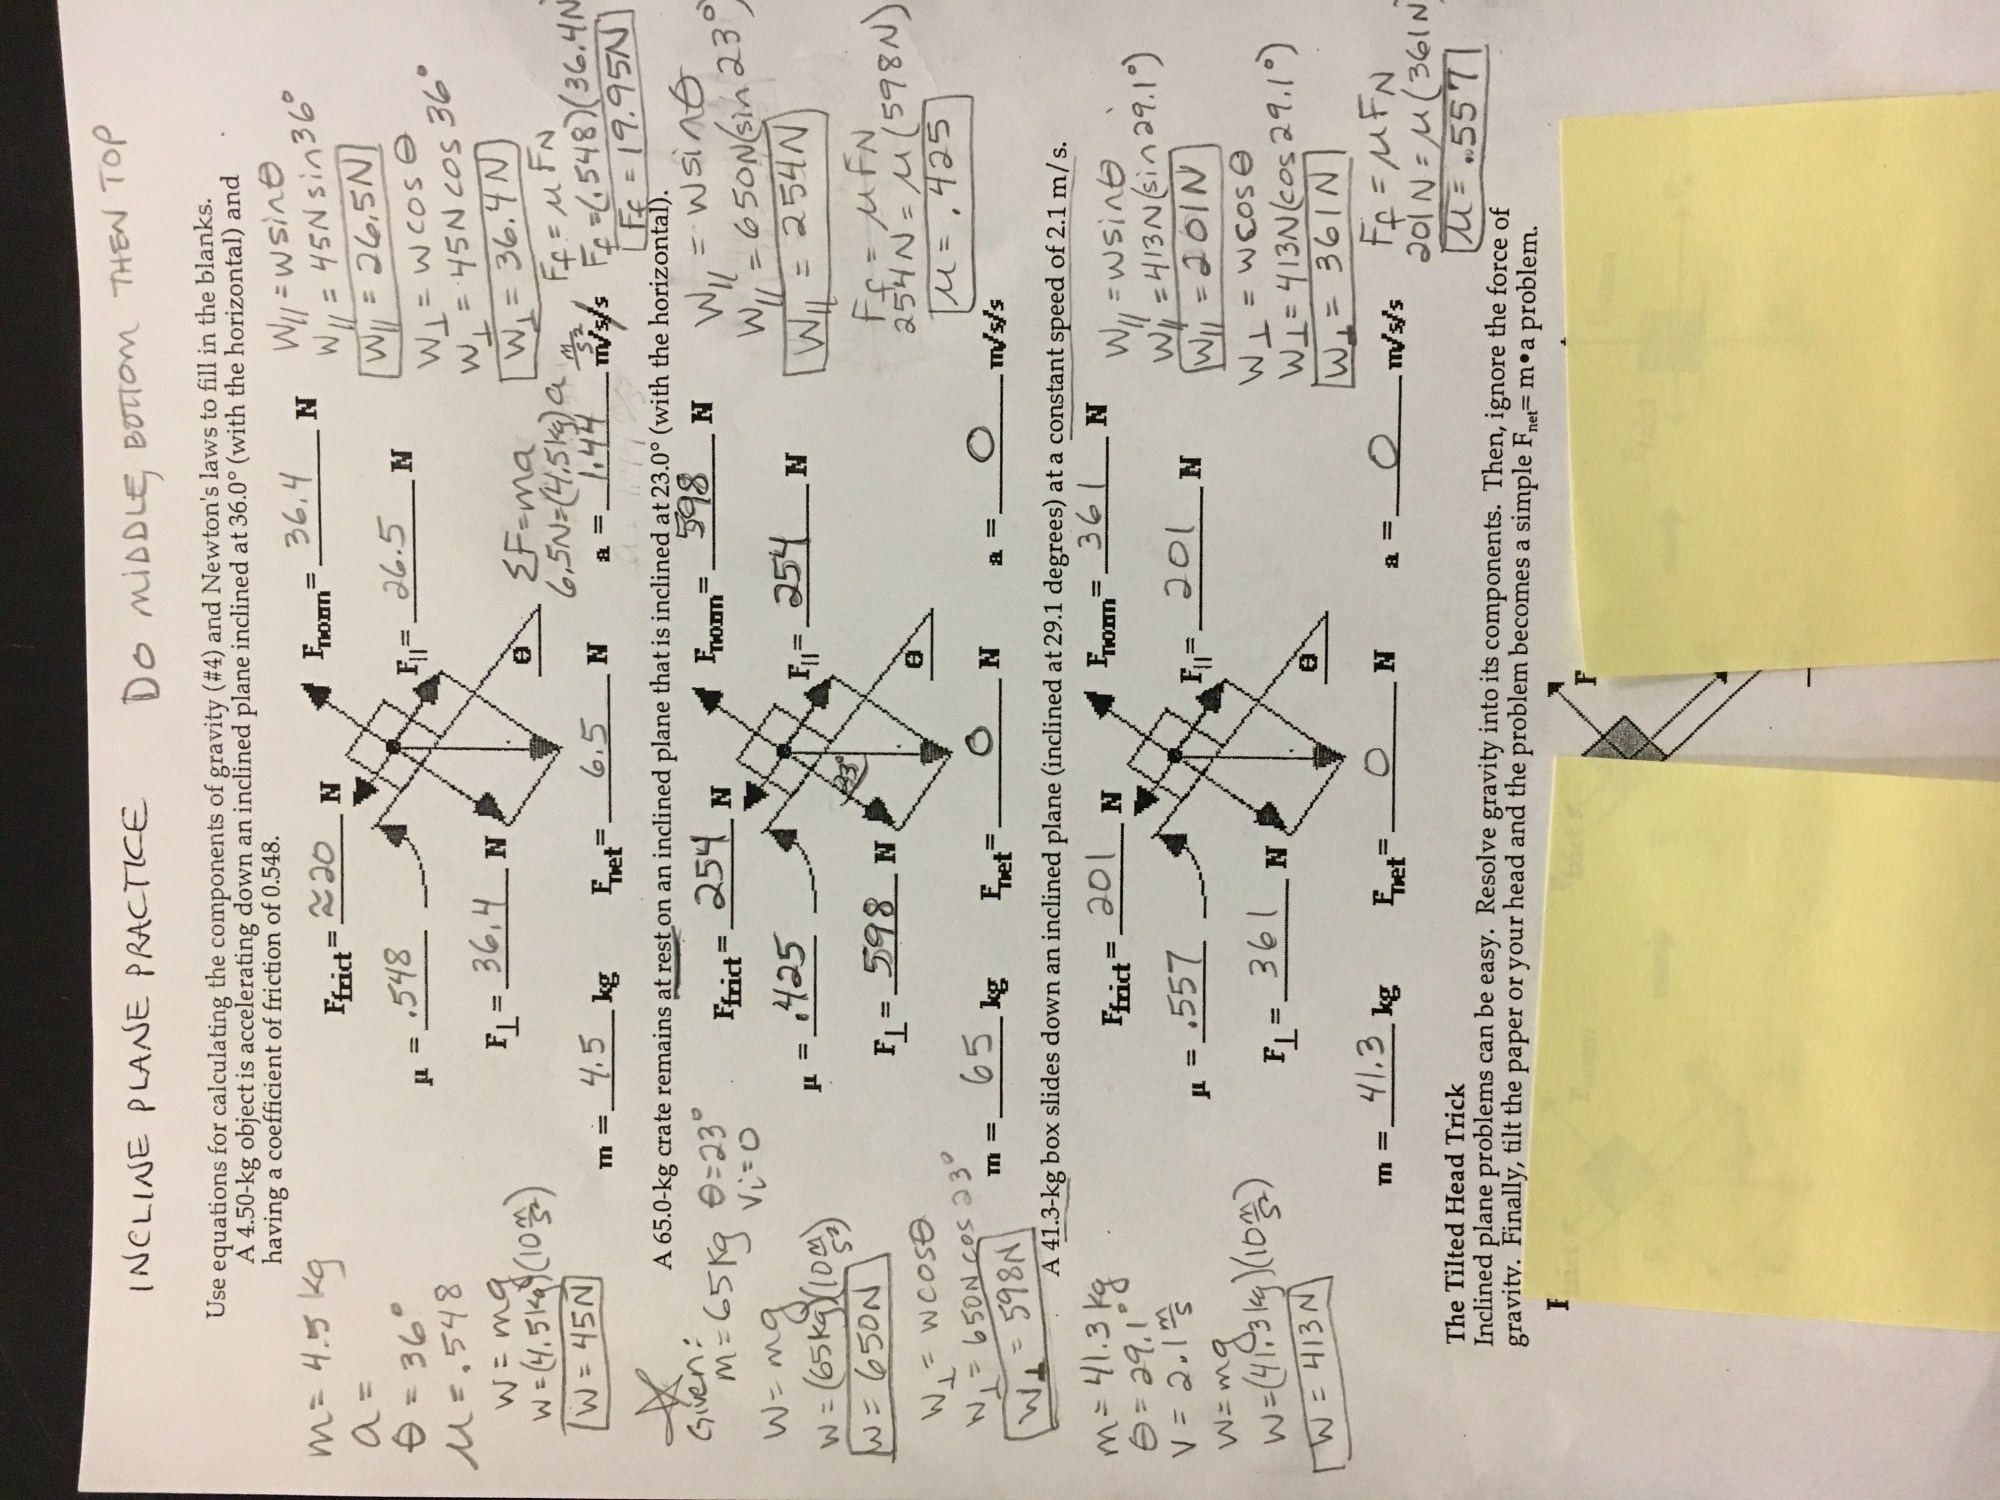 hight resolution of  2 complete problems 1 3 on the incline plane worksheet remember to show all work including free body diagrams inc plane ws jpg